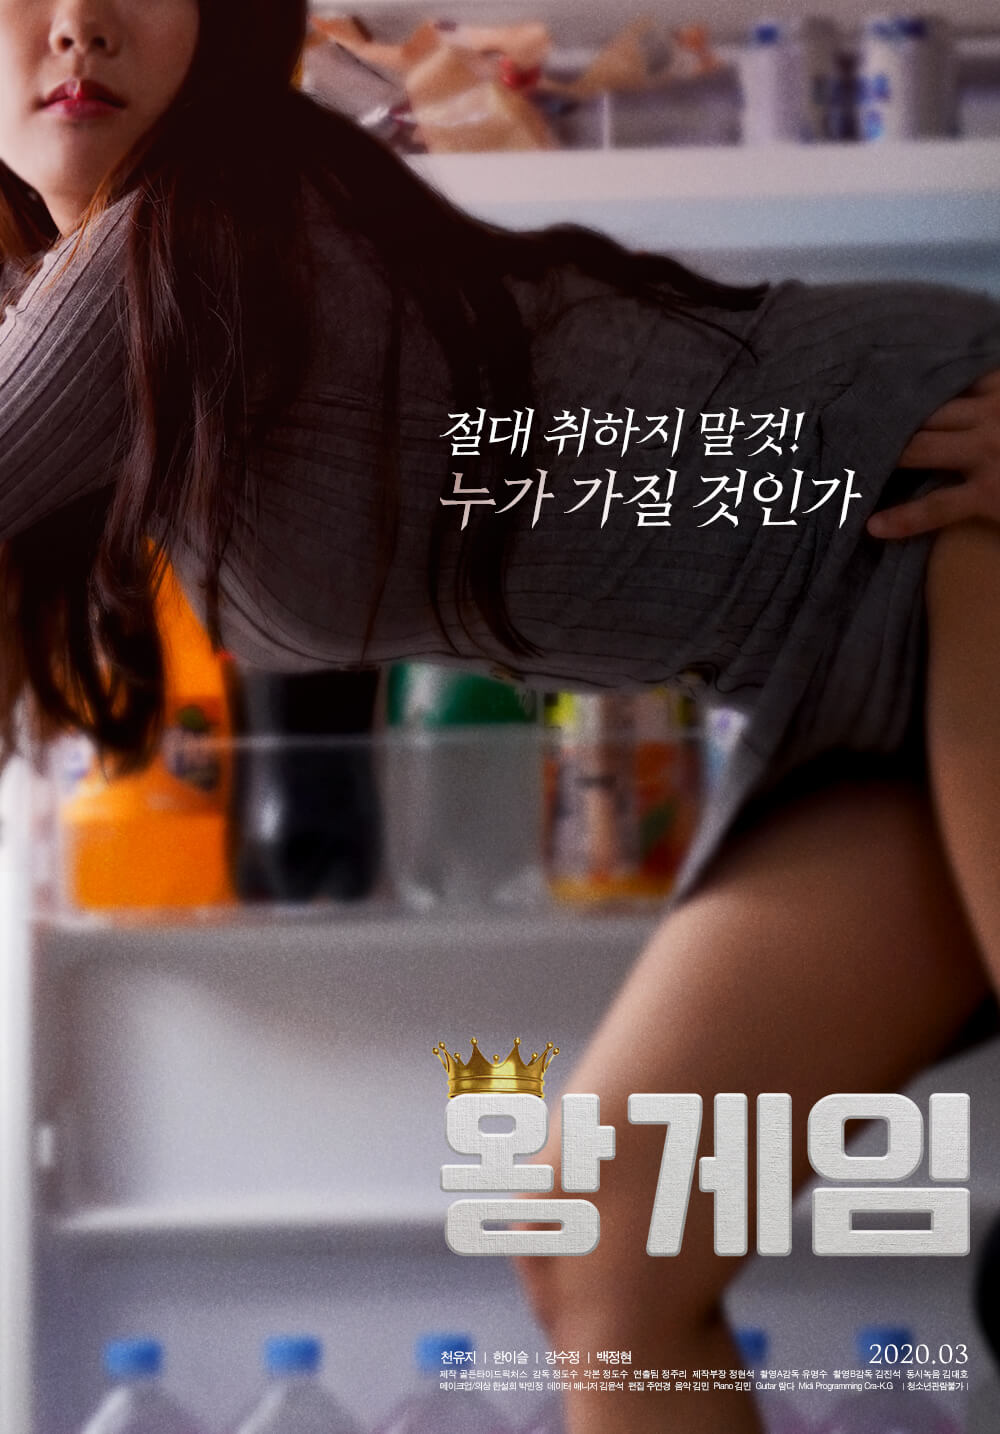 King Game (2020) Korean Full Movie 480p, 720p HDRip Download & Watch Online